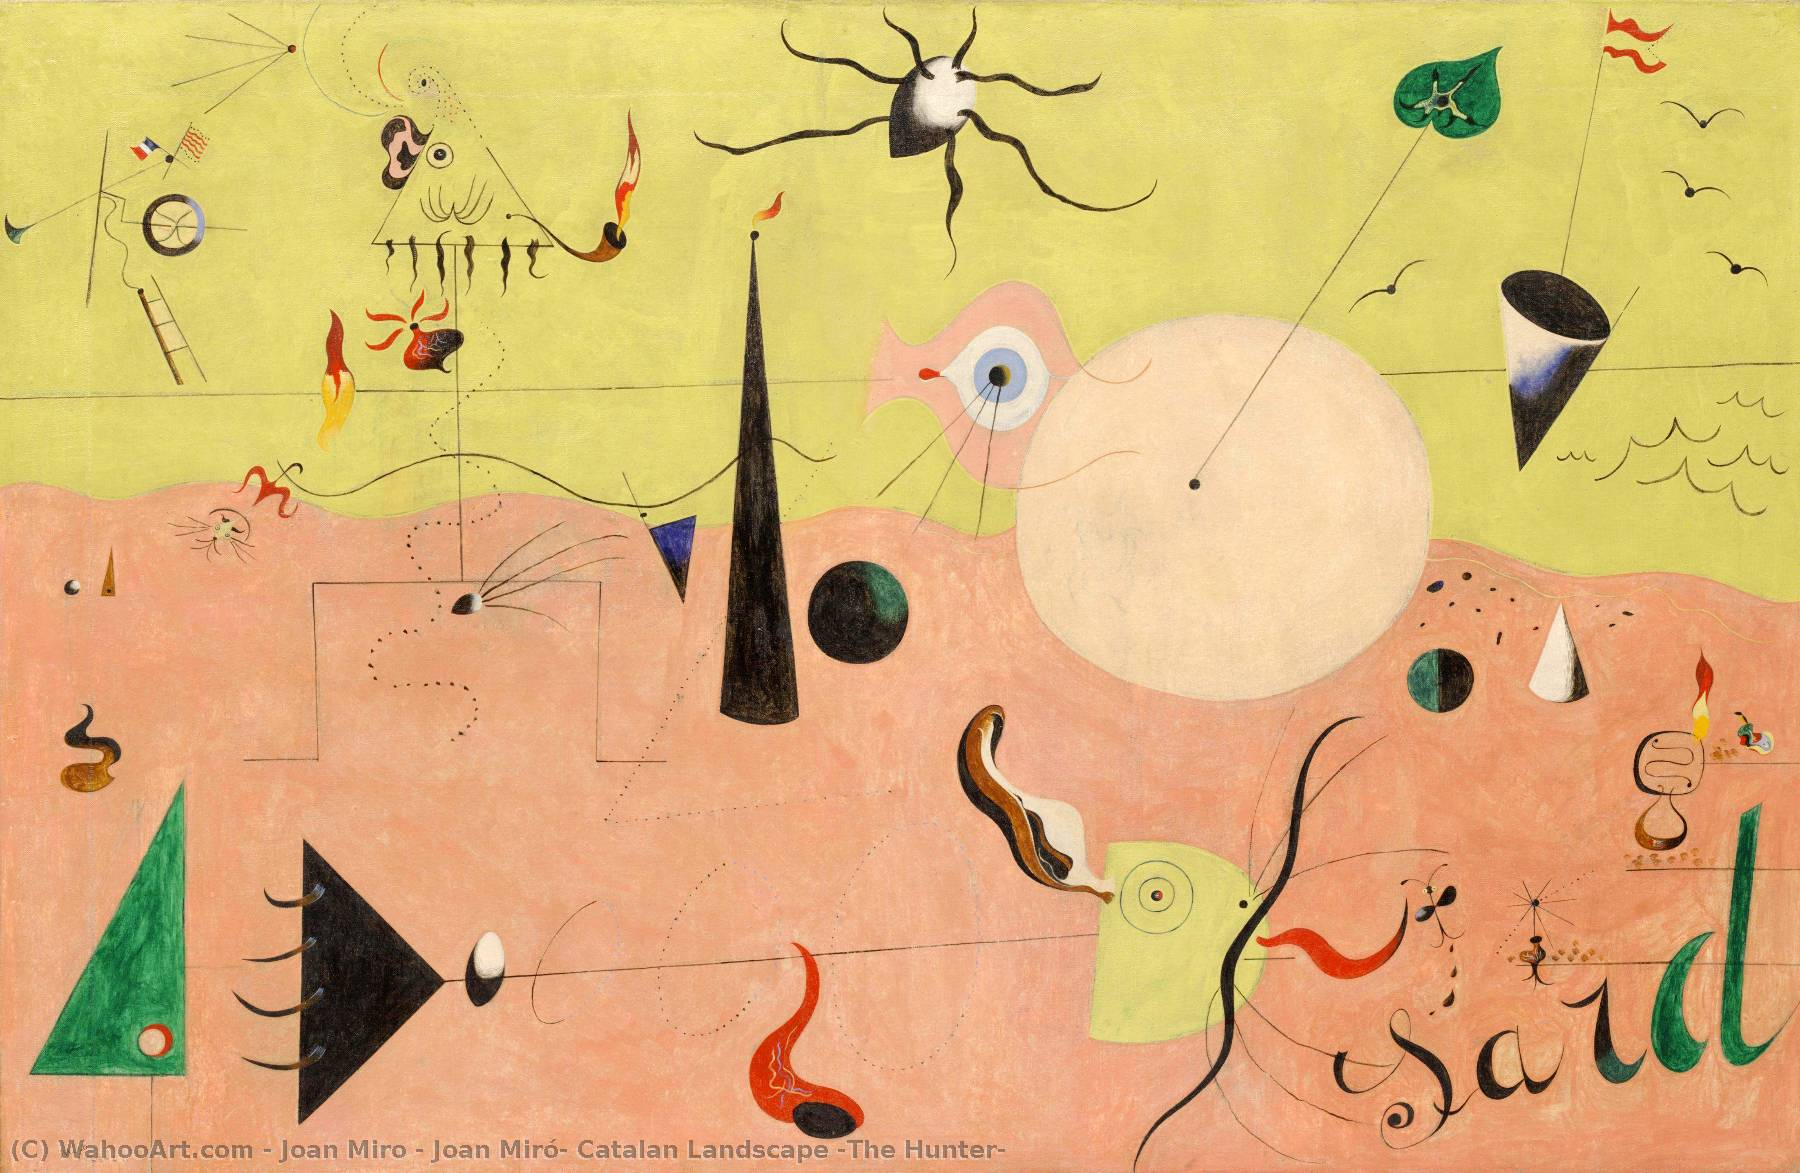 Buy Museum Art Reproductions | Joan Miró- Catalan Landscape (The Hunter) by Joan Miro | Most-Famous-Paintings.com